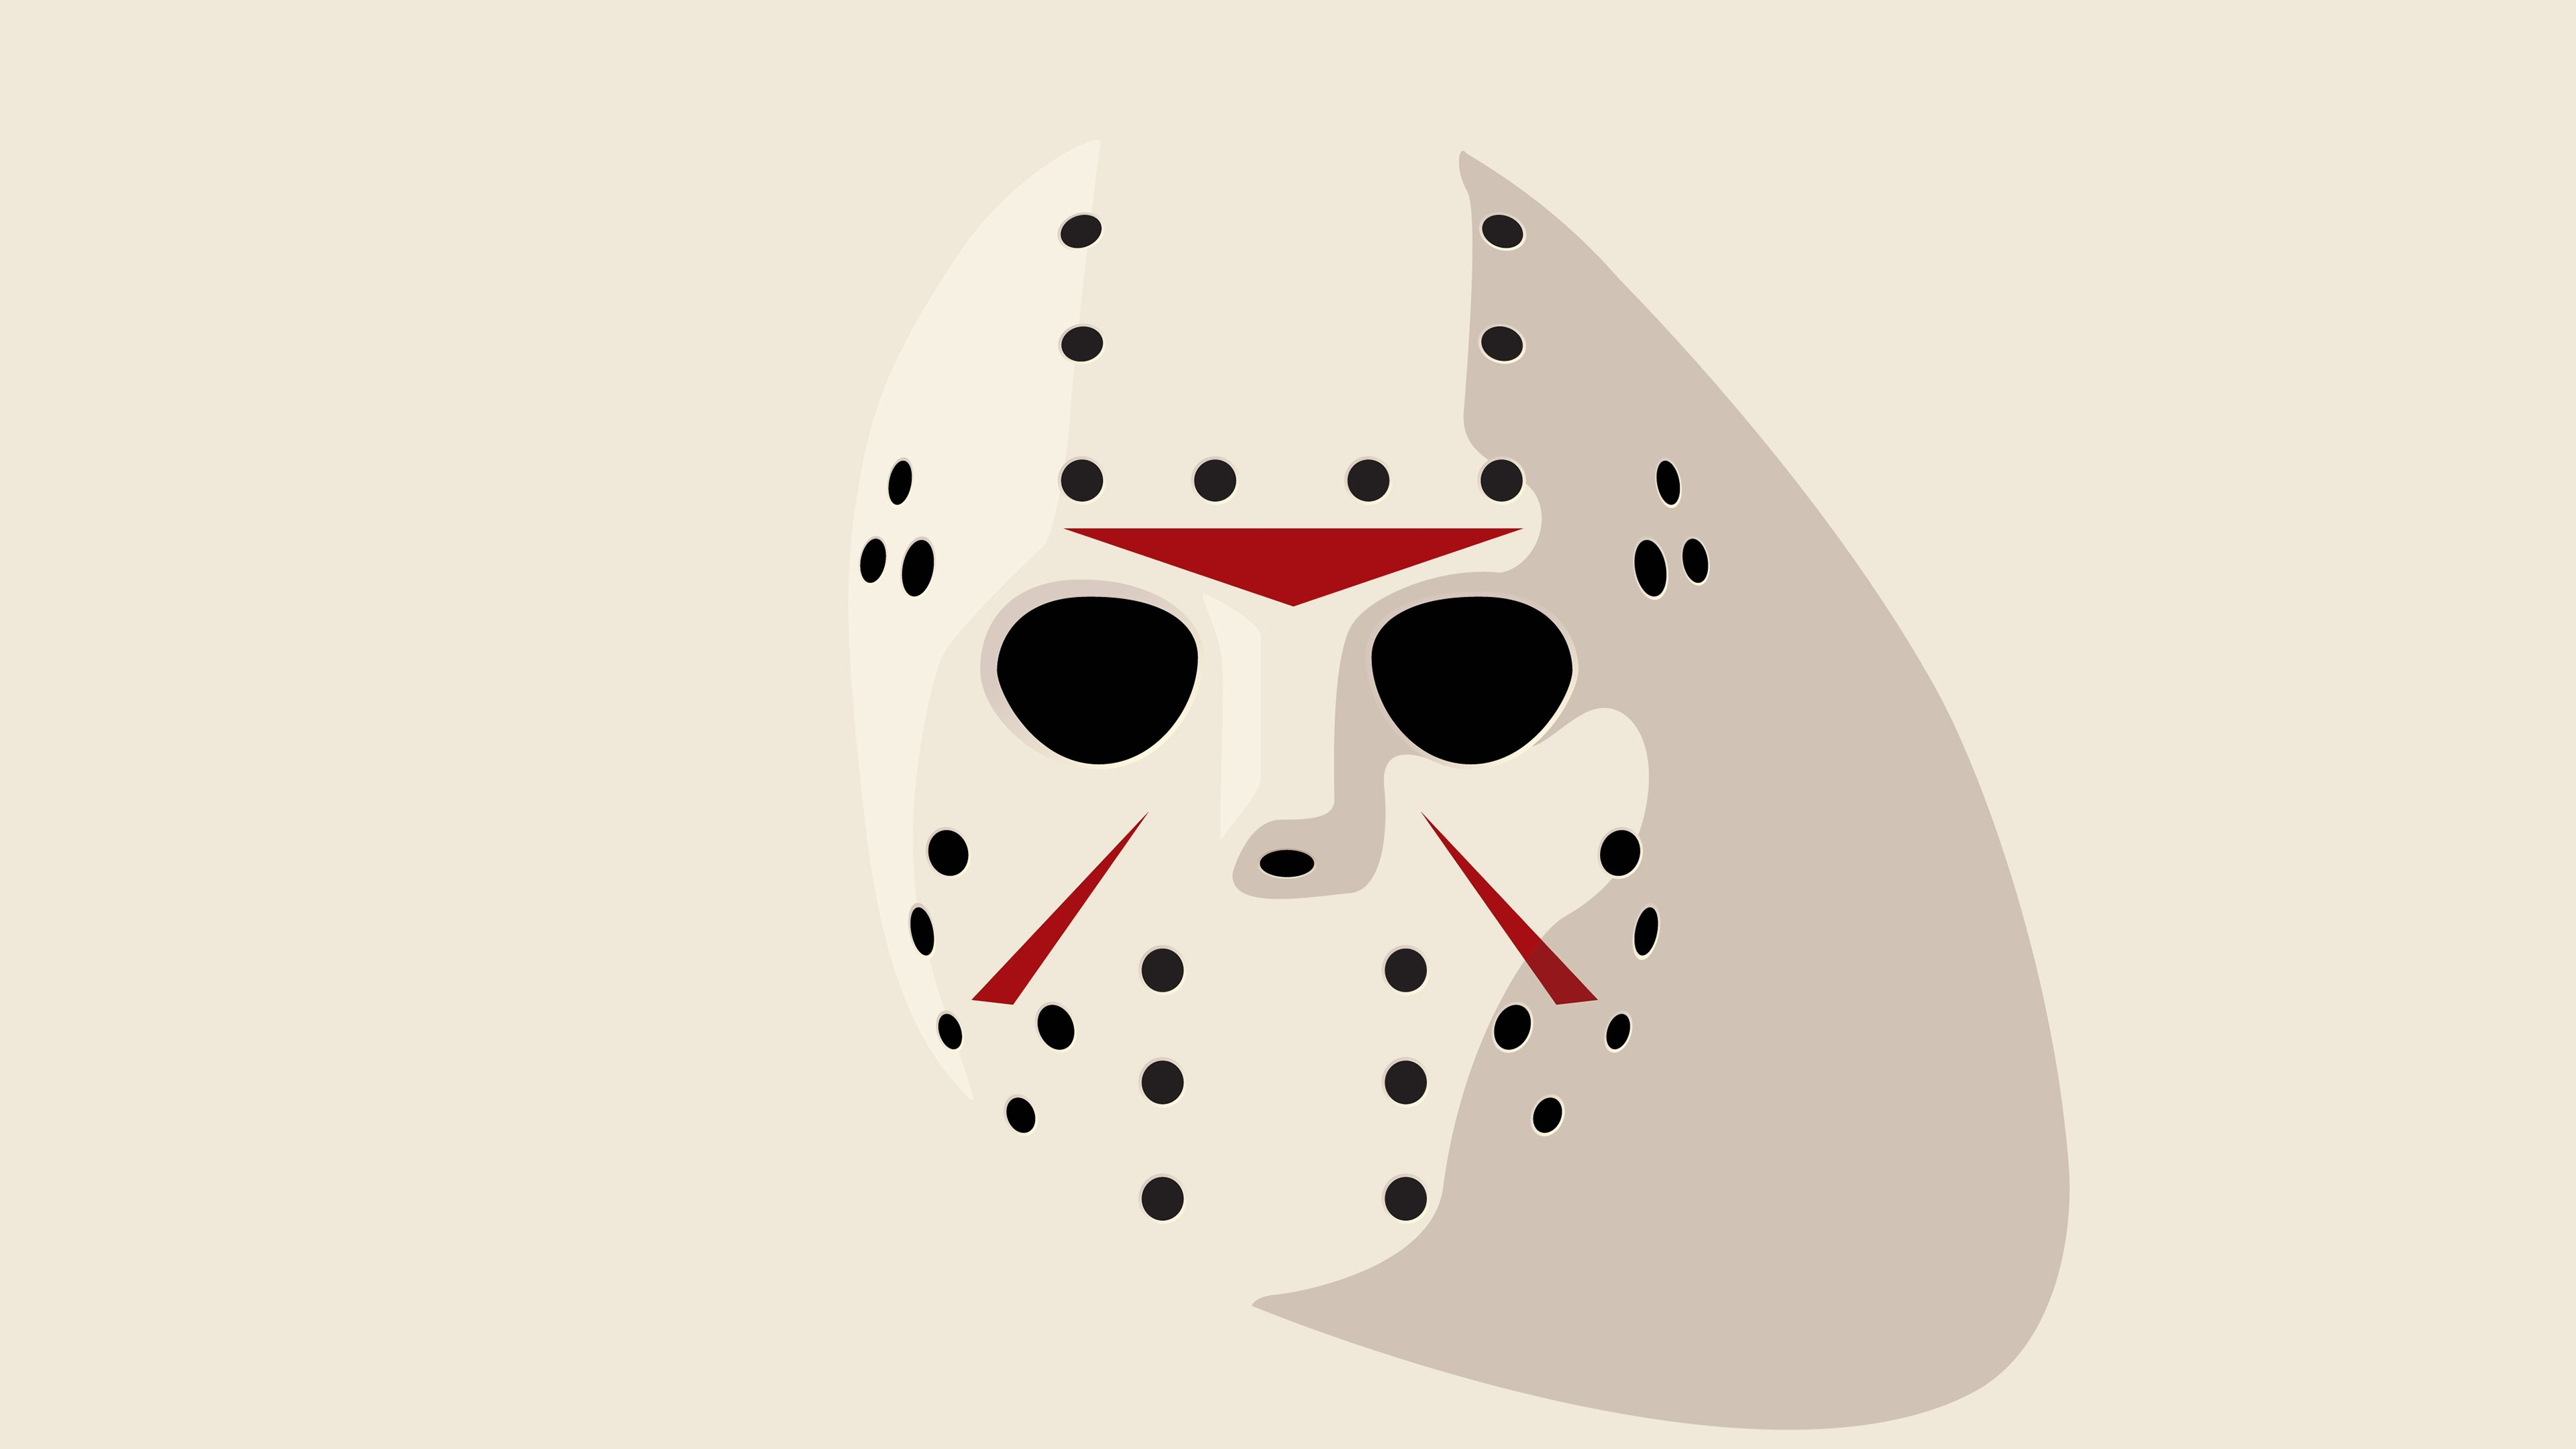 3840x2160 Preview wallpaper jason, friday 13th, hockey mask